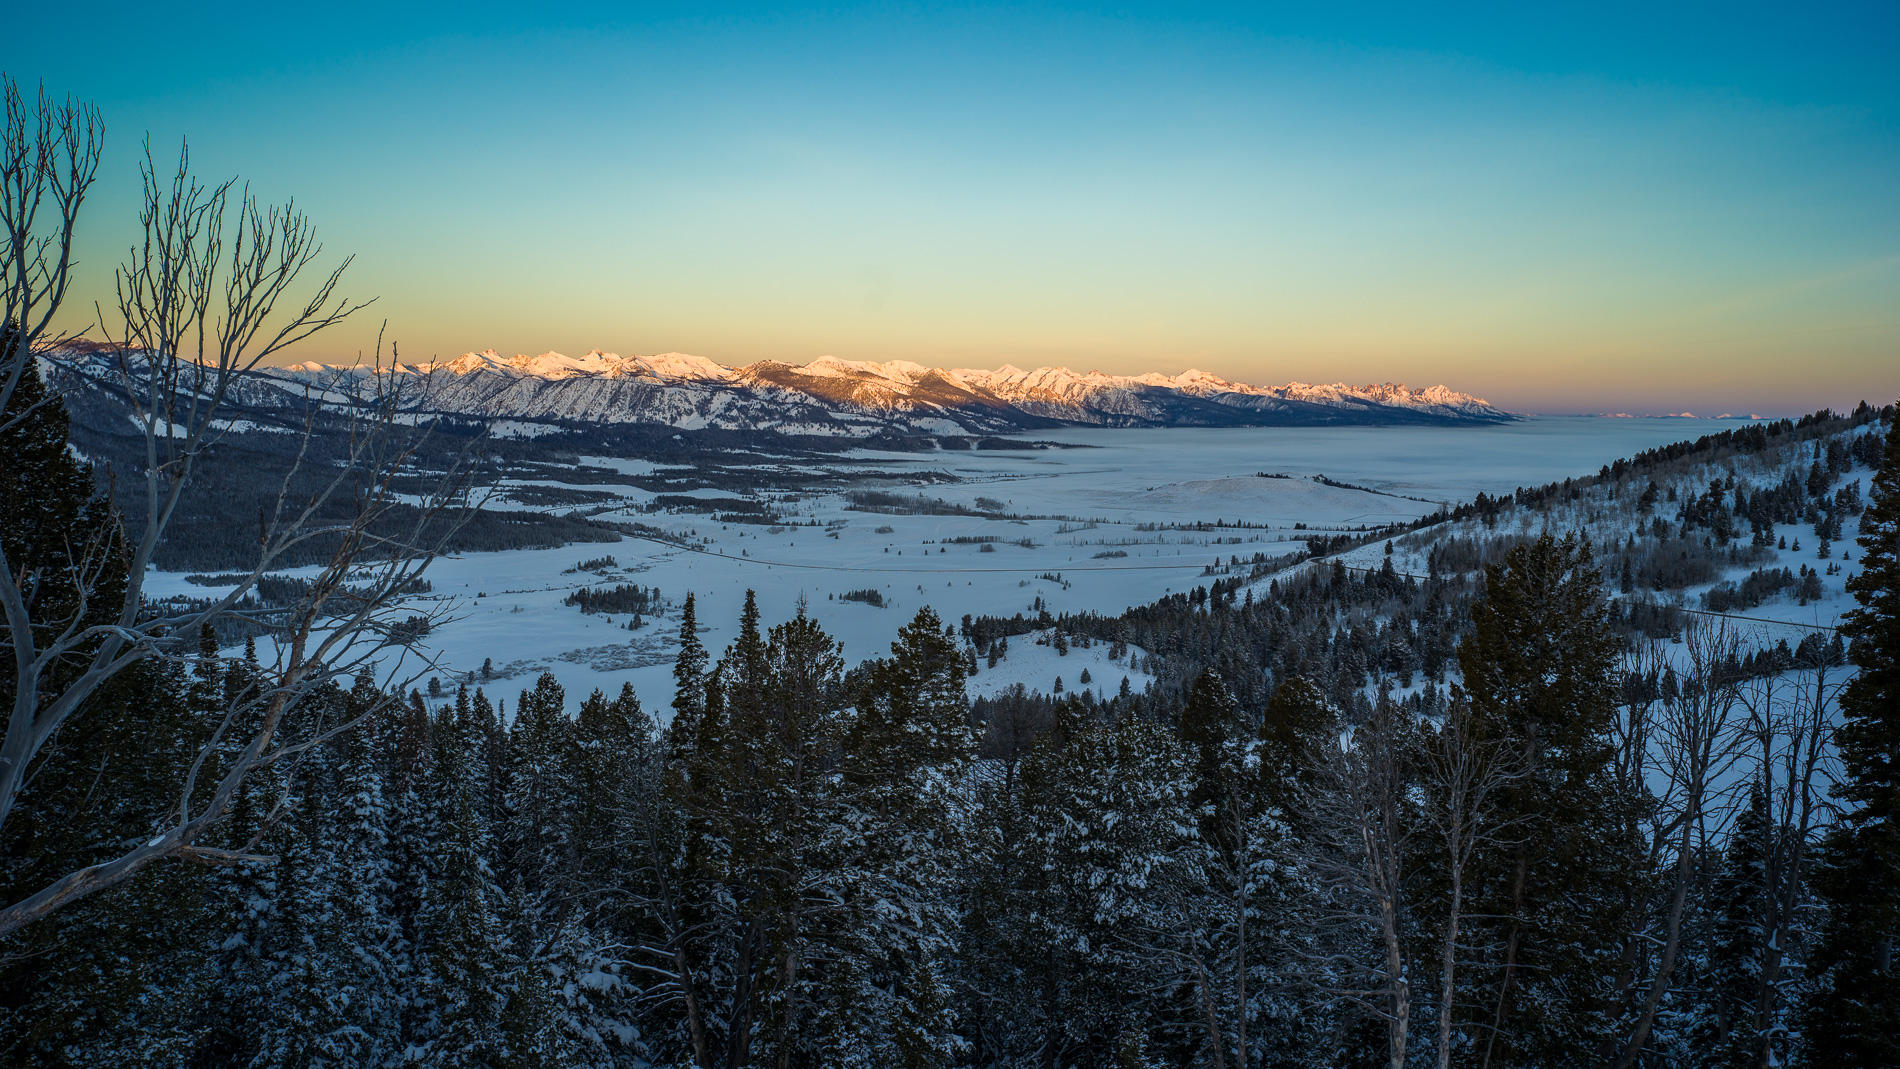 Dawn on Sawtooth Mountains, Stanley Basin : landscapes : TIMOTHY FLOYD PHOTOGRAPHER, NATURE PHOTOGRAPHY, PHOTO ESSAYS, PHOTOJOURNALISM